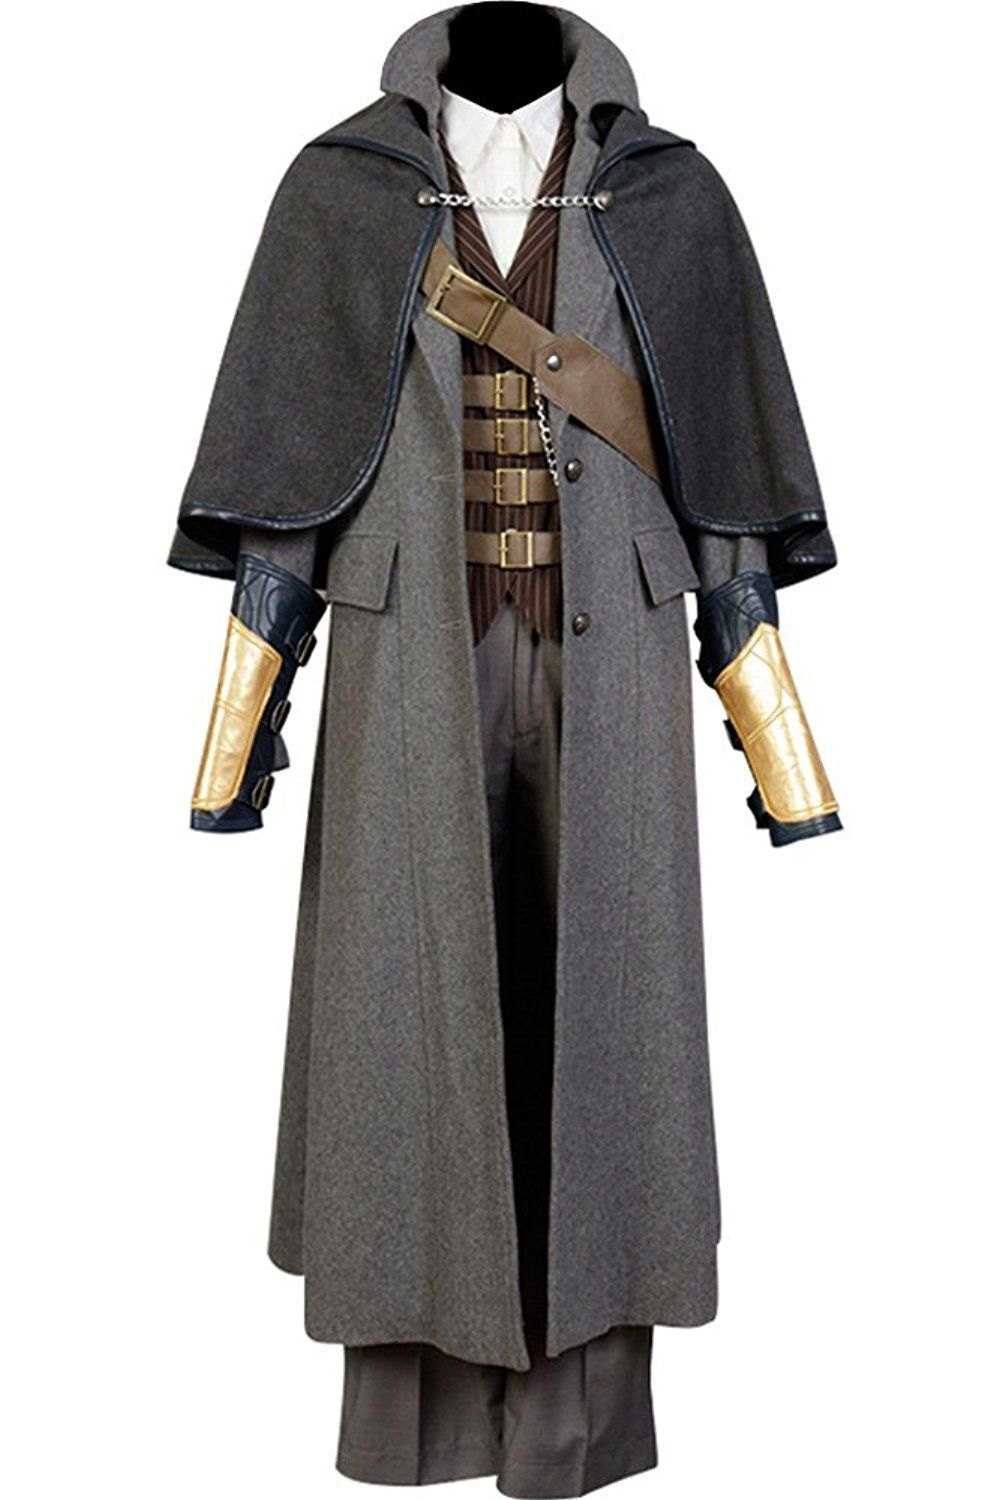 Bloodborne The Hunter Set Cosplay Costume Jacket Coat Outfit Suit Tricorn Hat